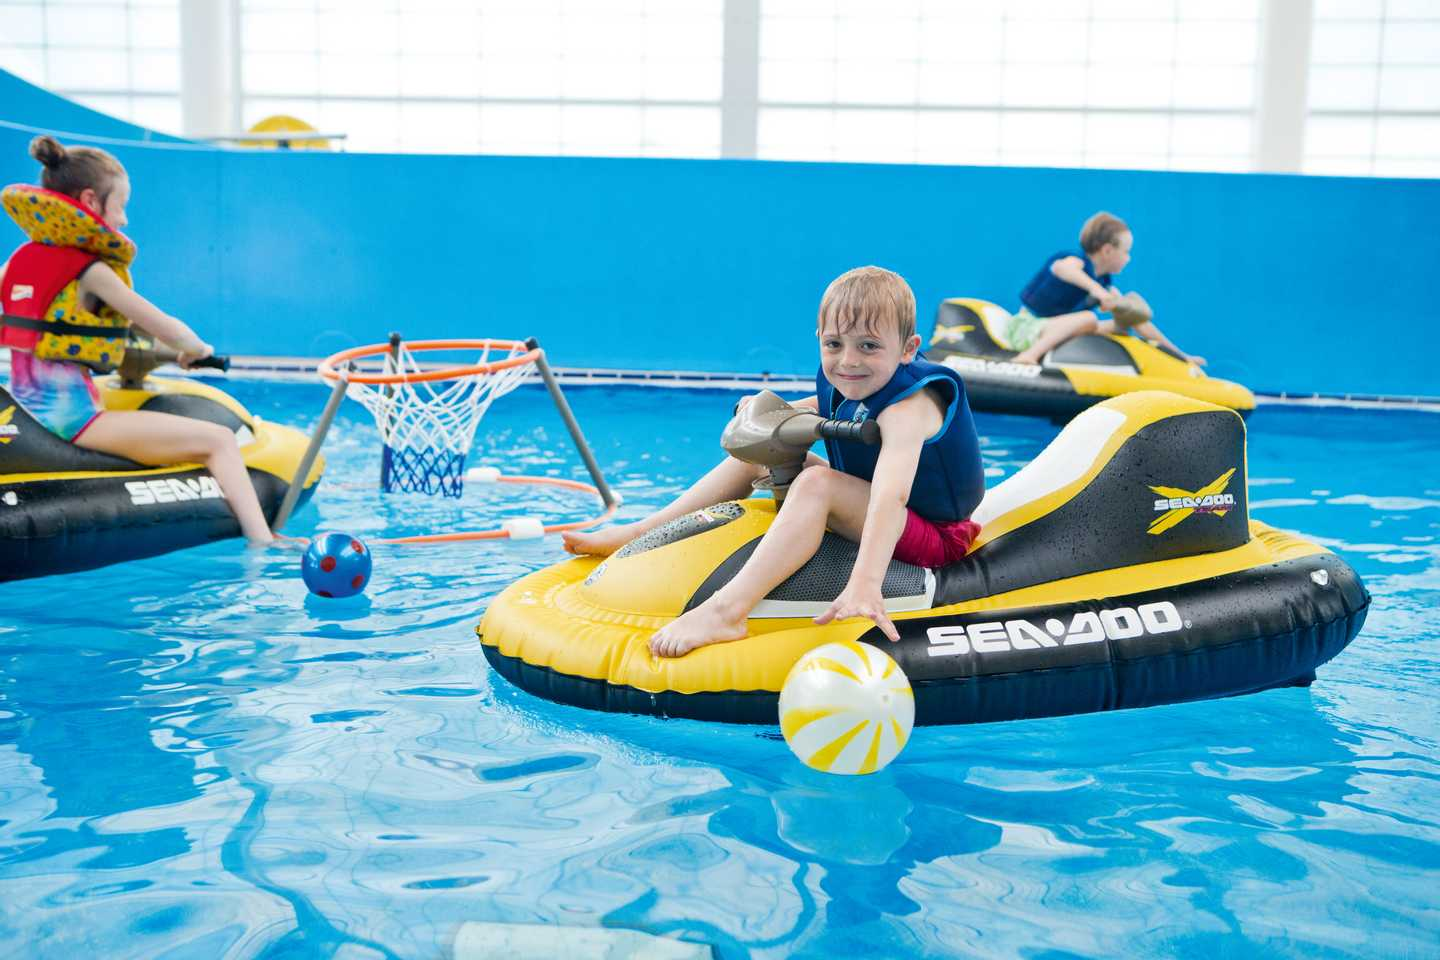 Child navigating the pool in an aqua glider